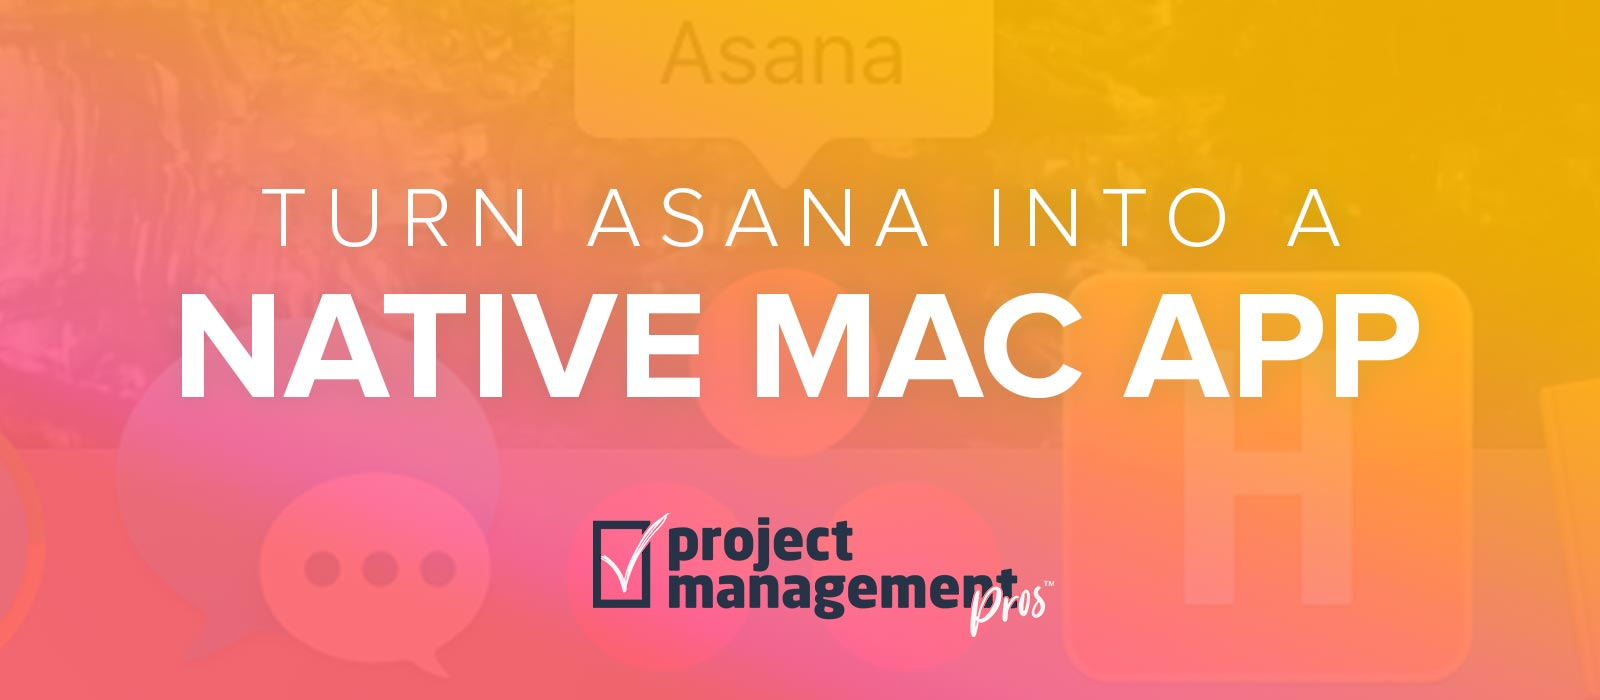 Turn Asana into a native Mac app with Fluid